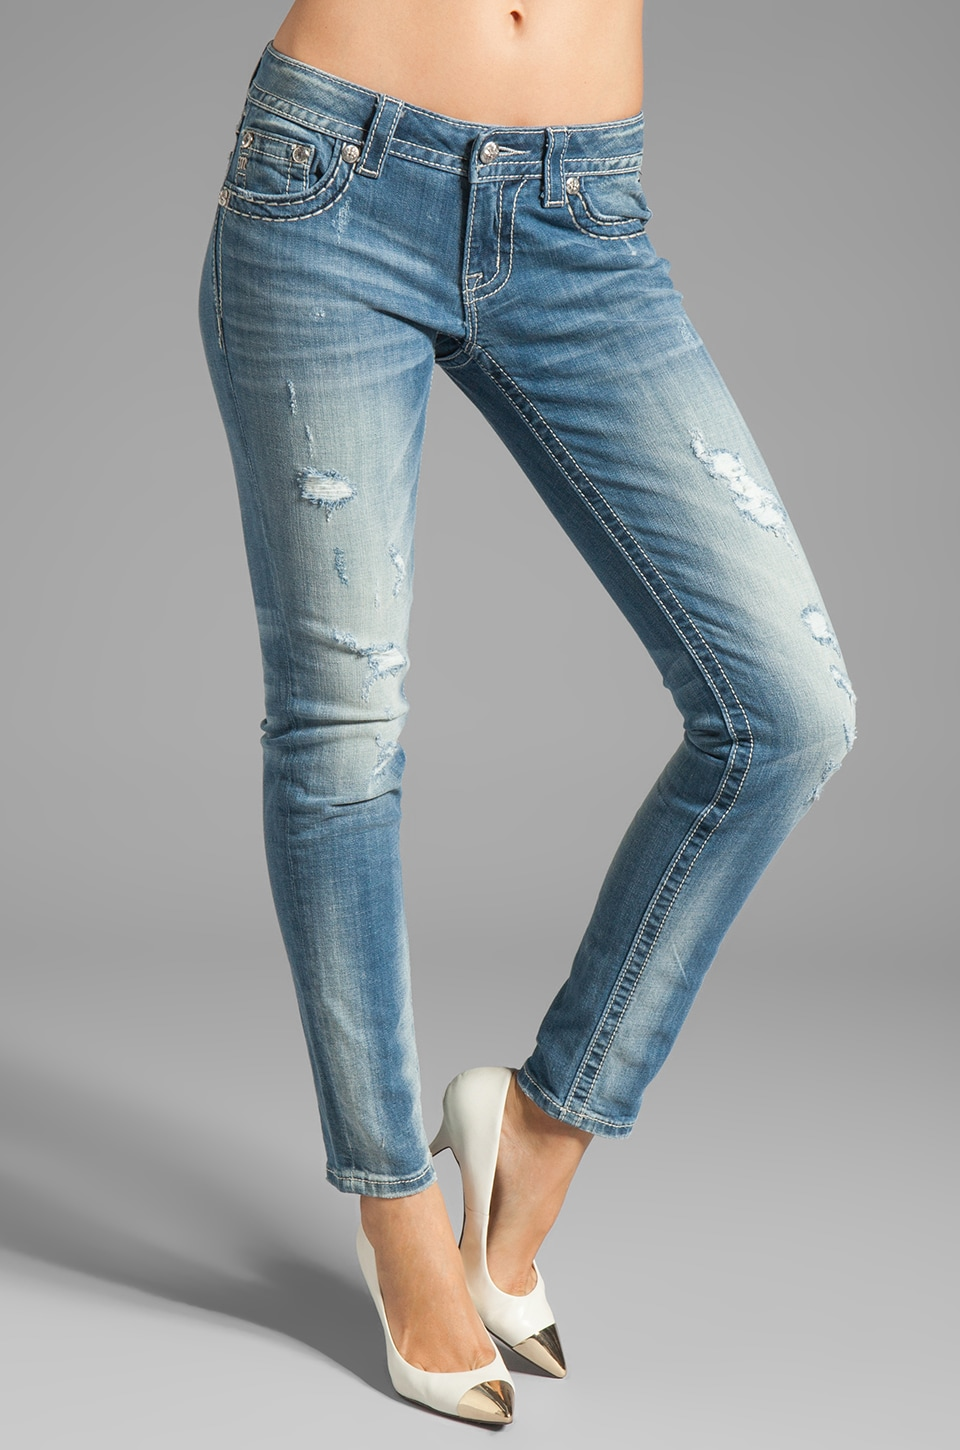 Miss Me Jeans Ankle Skinny in Med 130